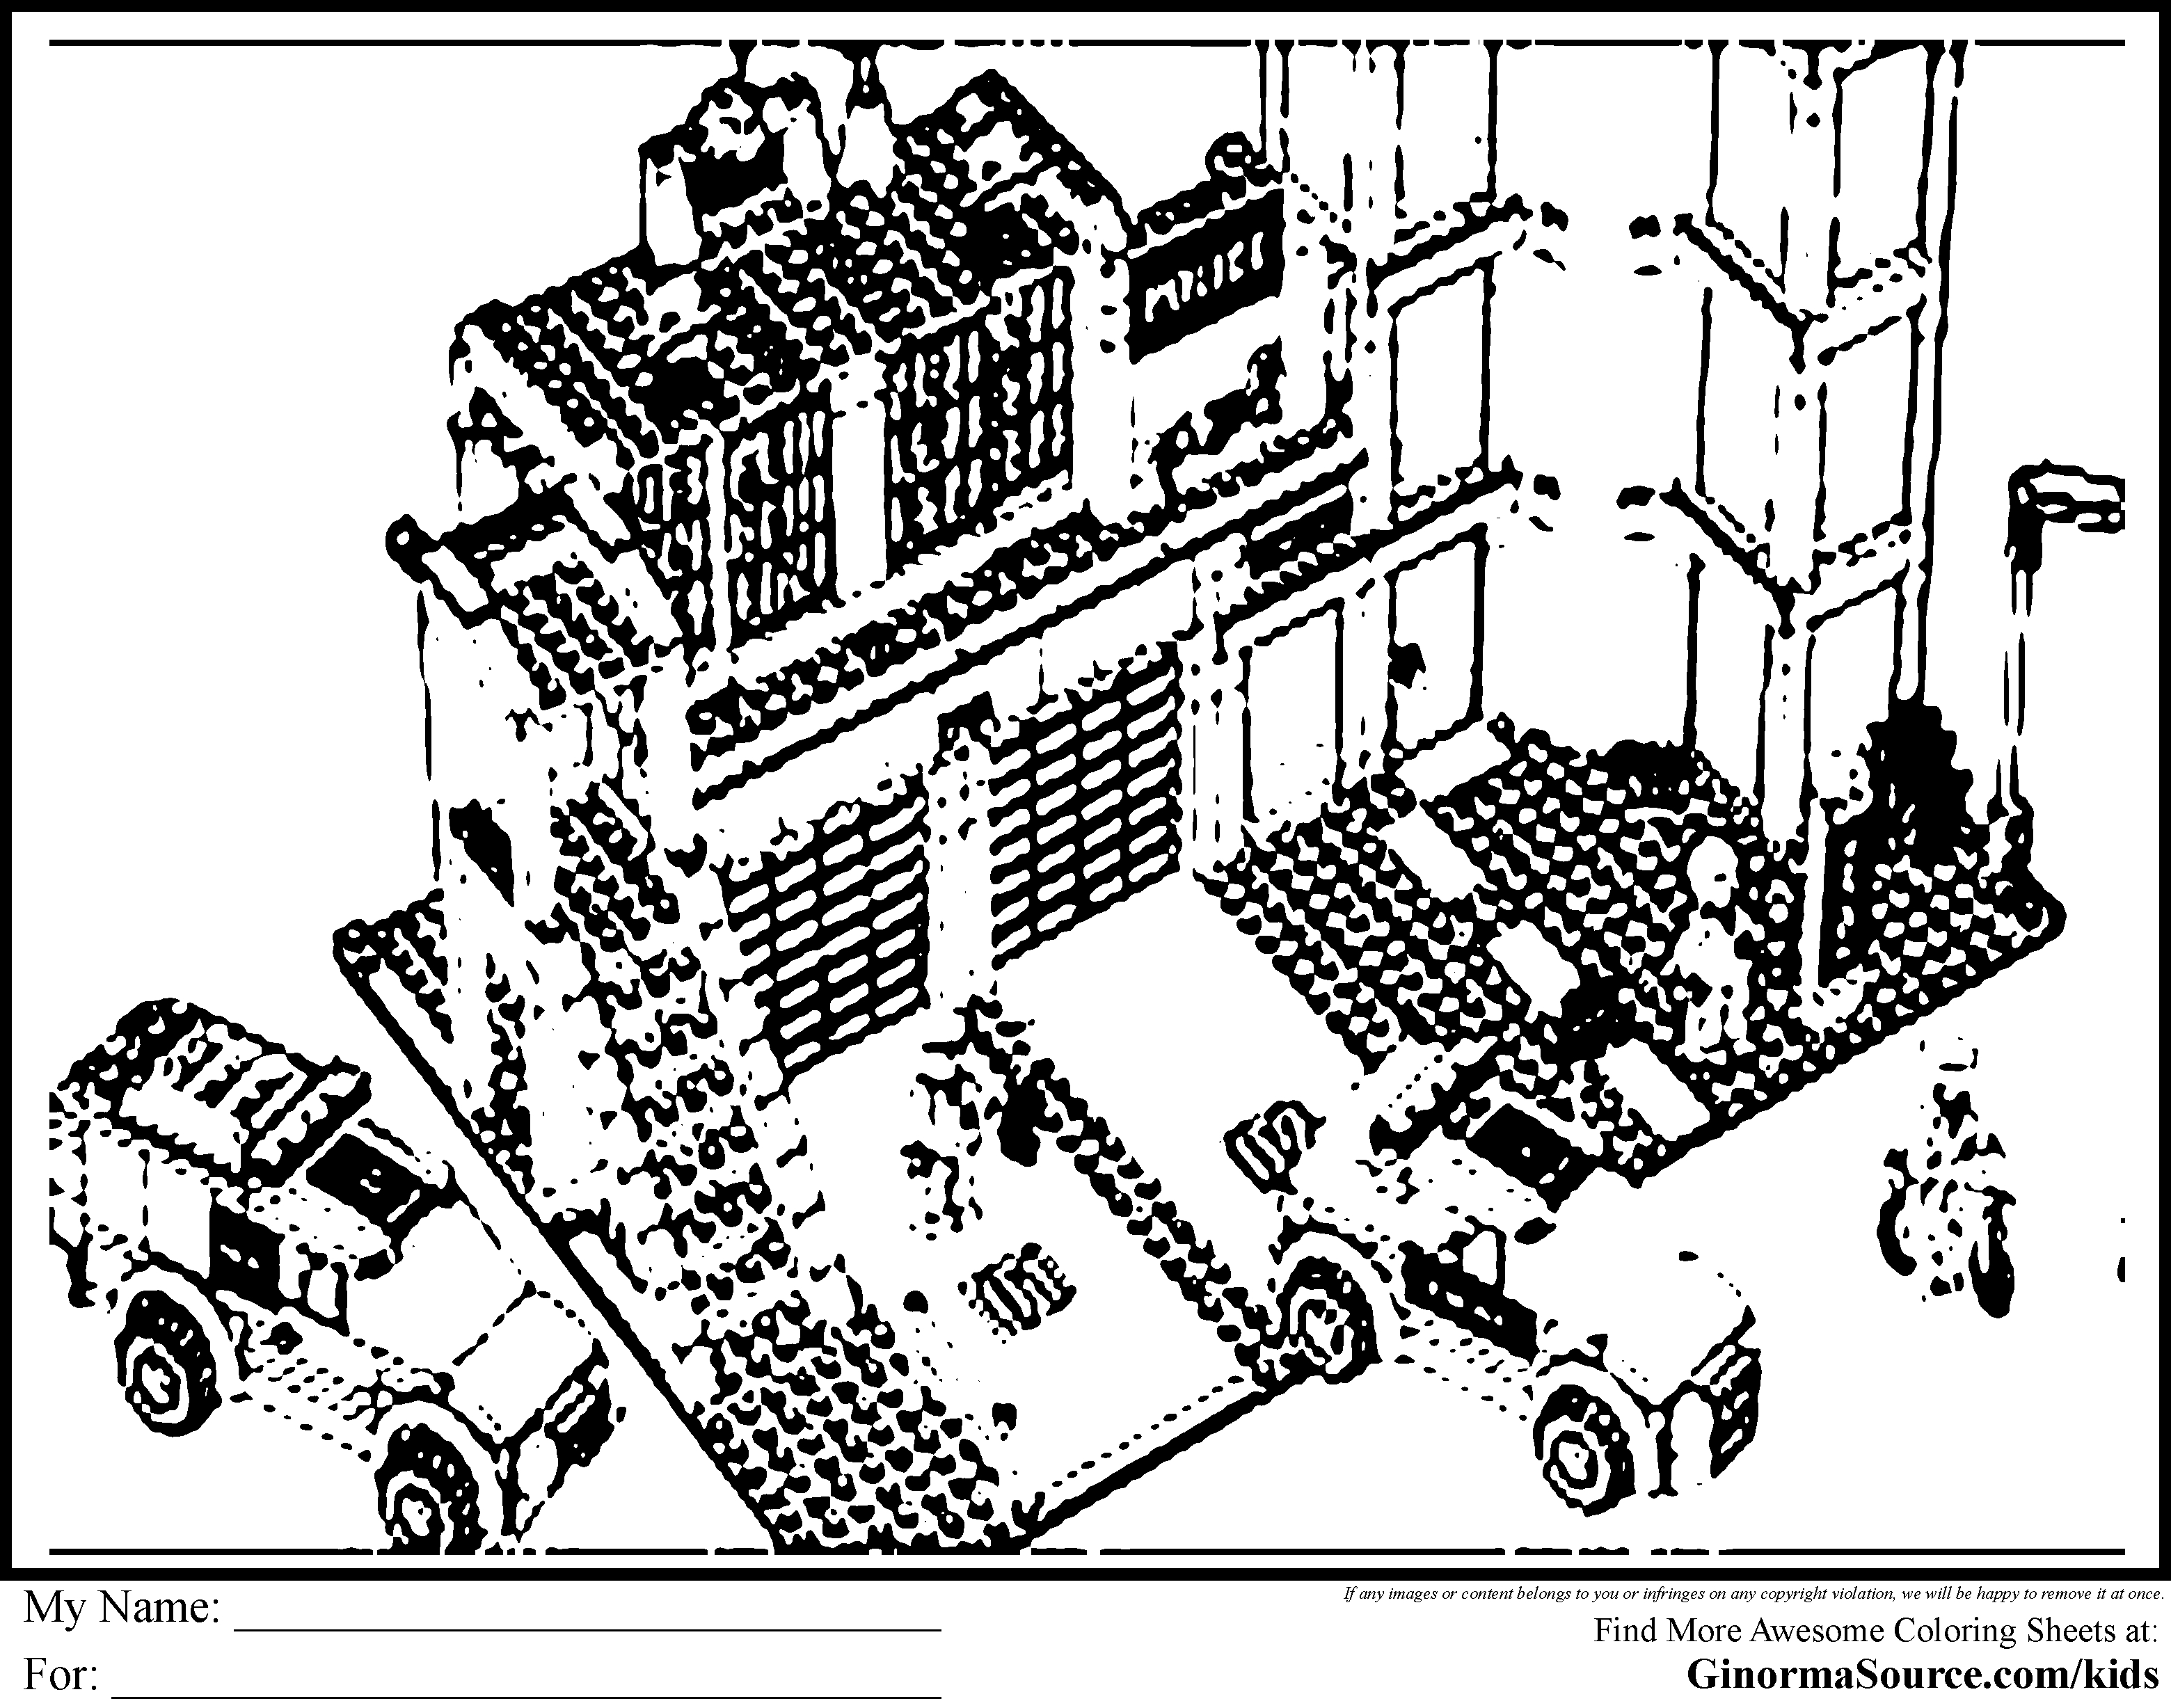 28 Lego City Coloring Pages Selection Free Coloring Pages Part 3